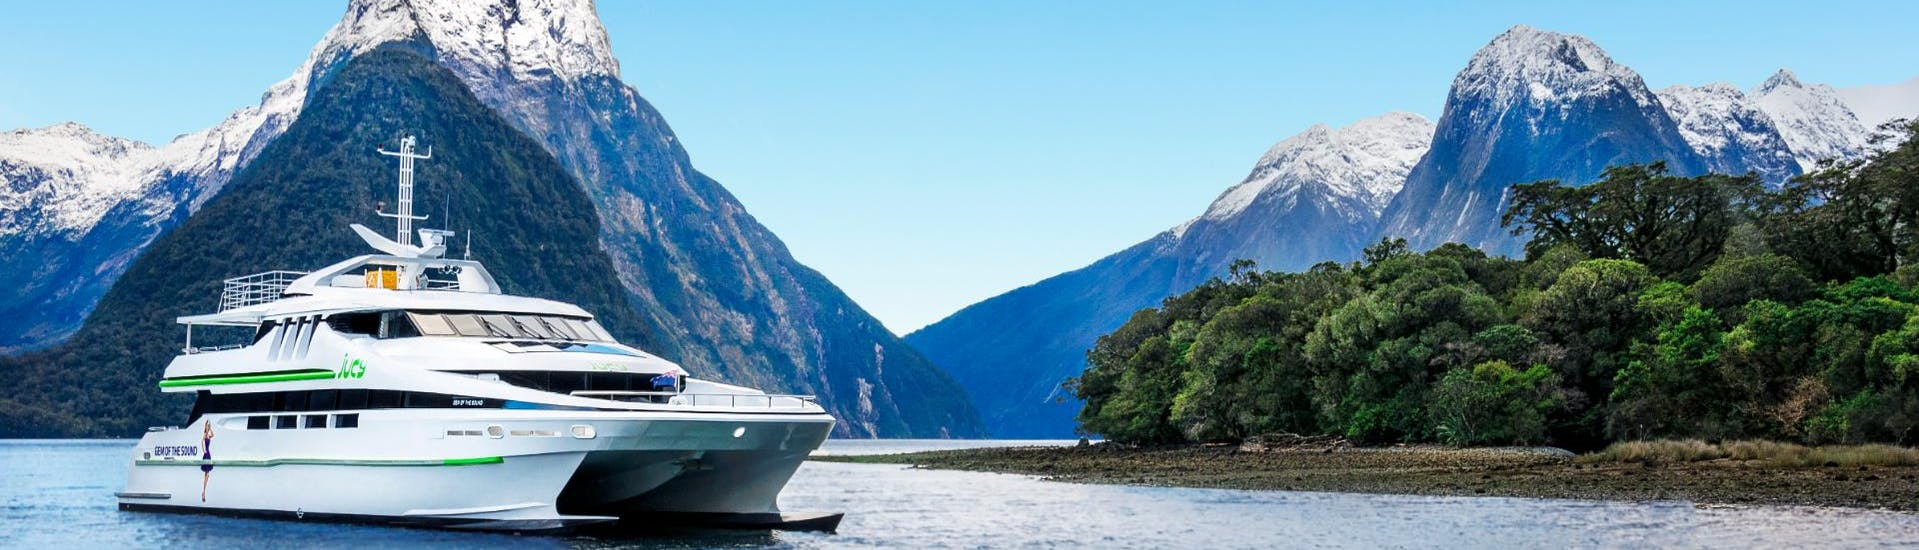 """During the Milford Sound Cruise """"Premium"""" - Summer, people aboard the superb catamaran from Jucy Cruise are enjoying the spectacular views."""